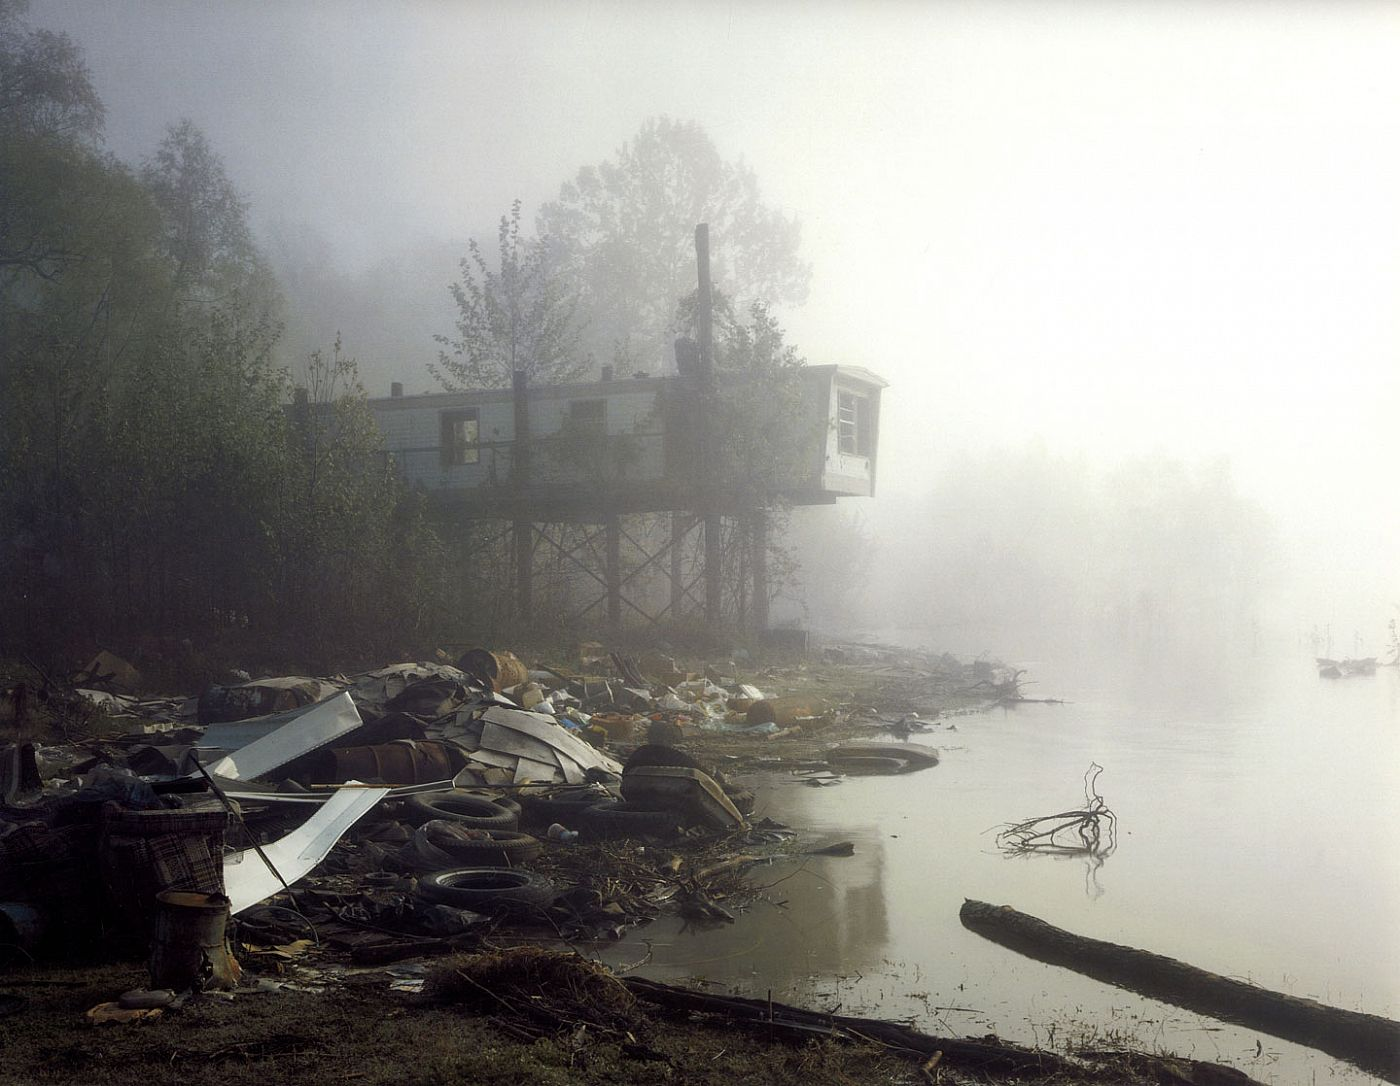 Richard Misrach: Chronologies